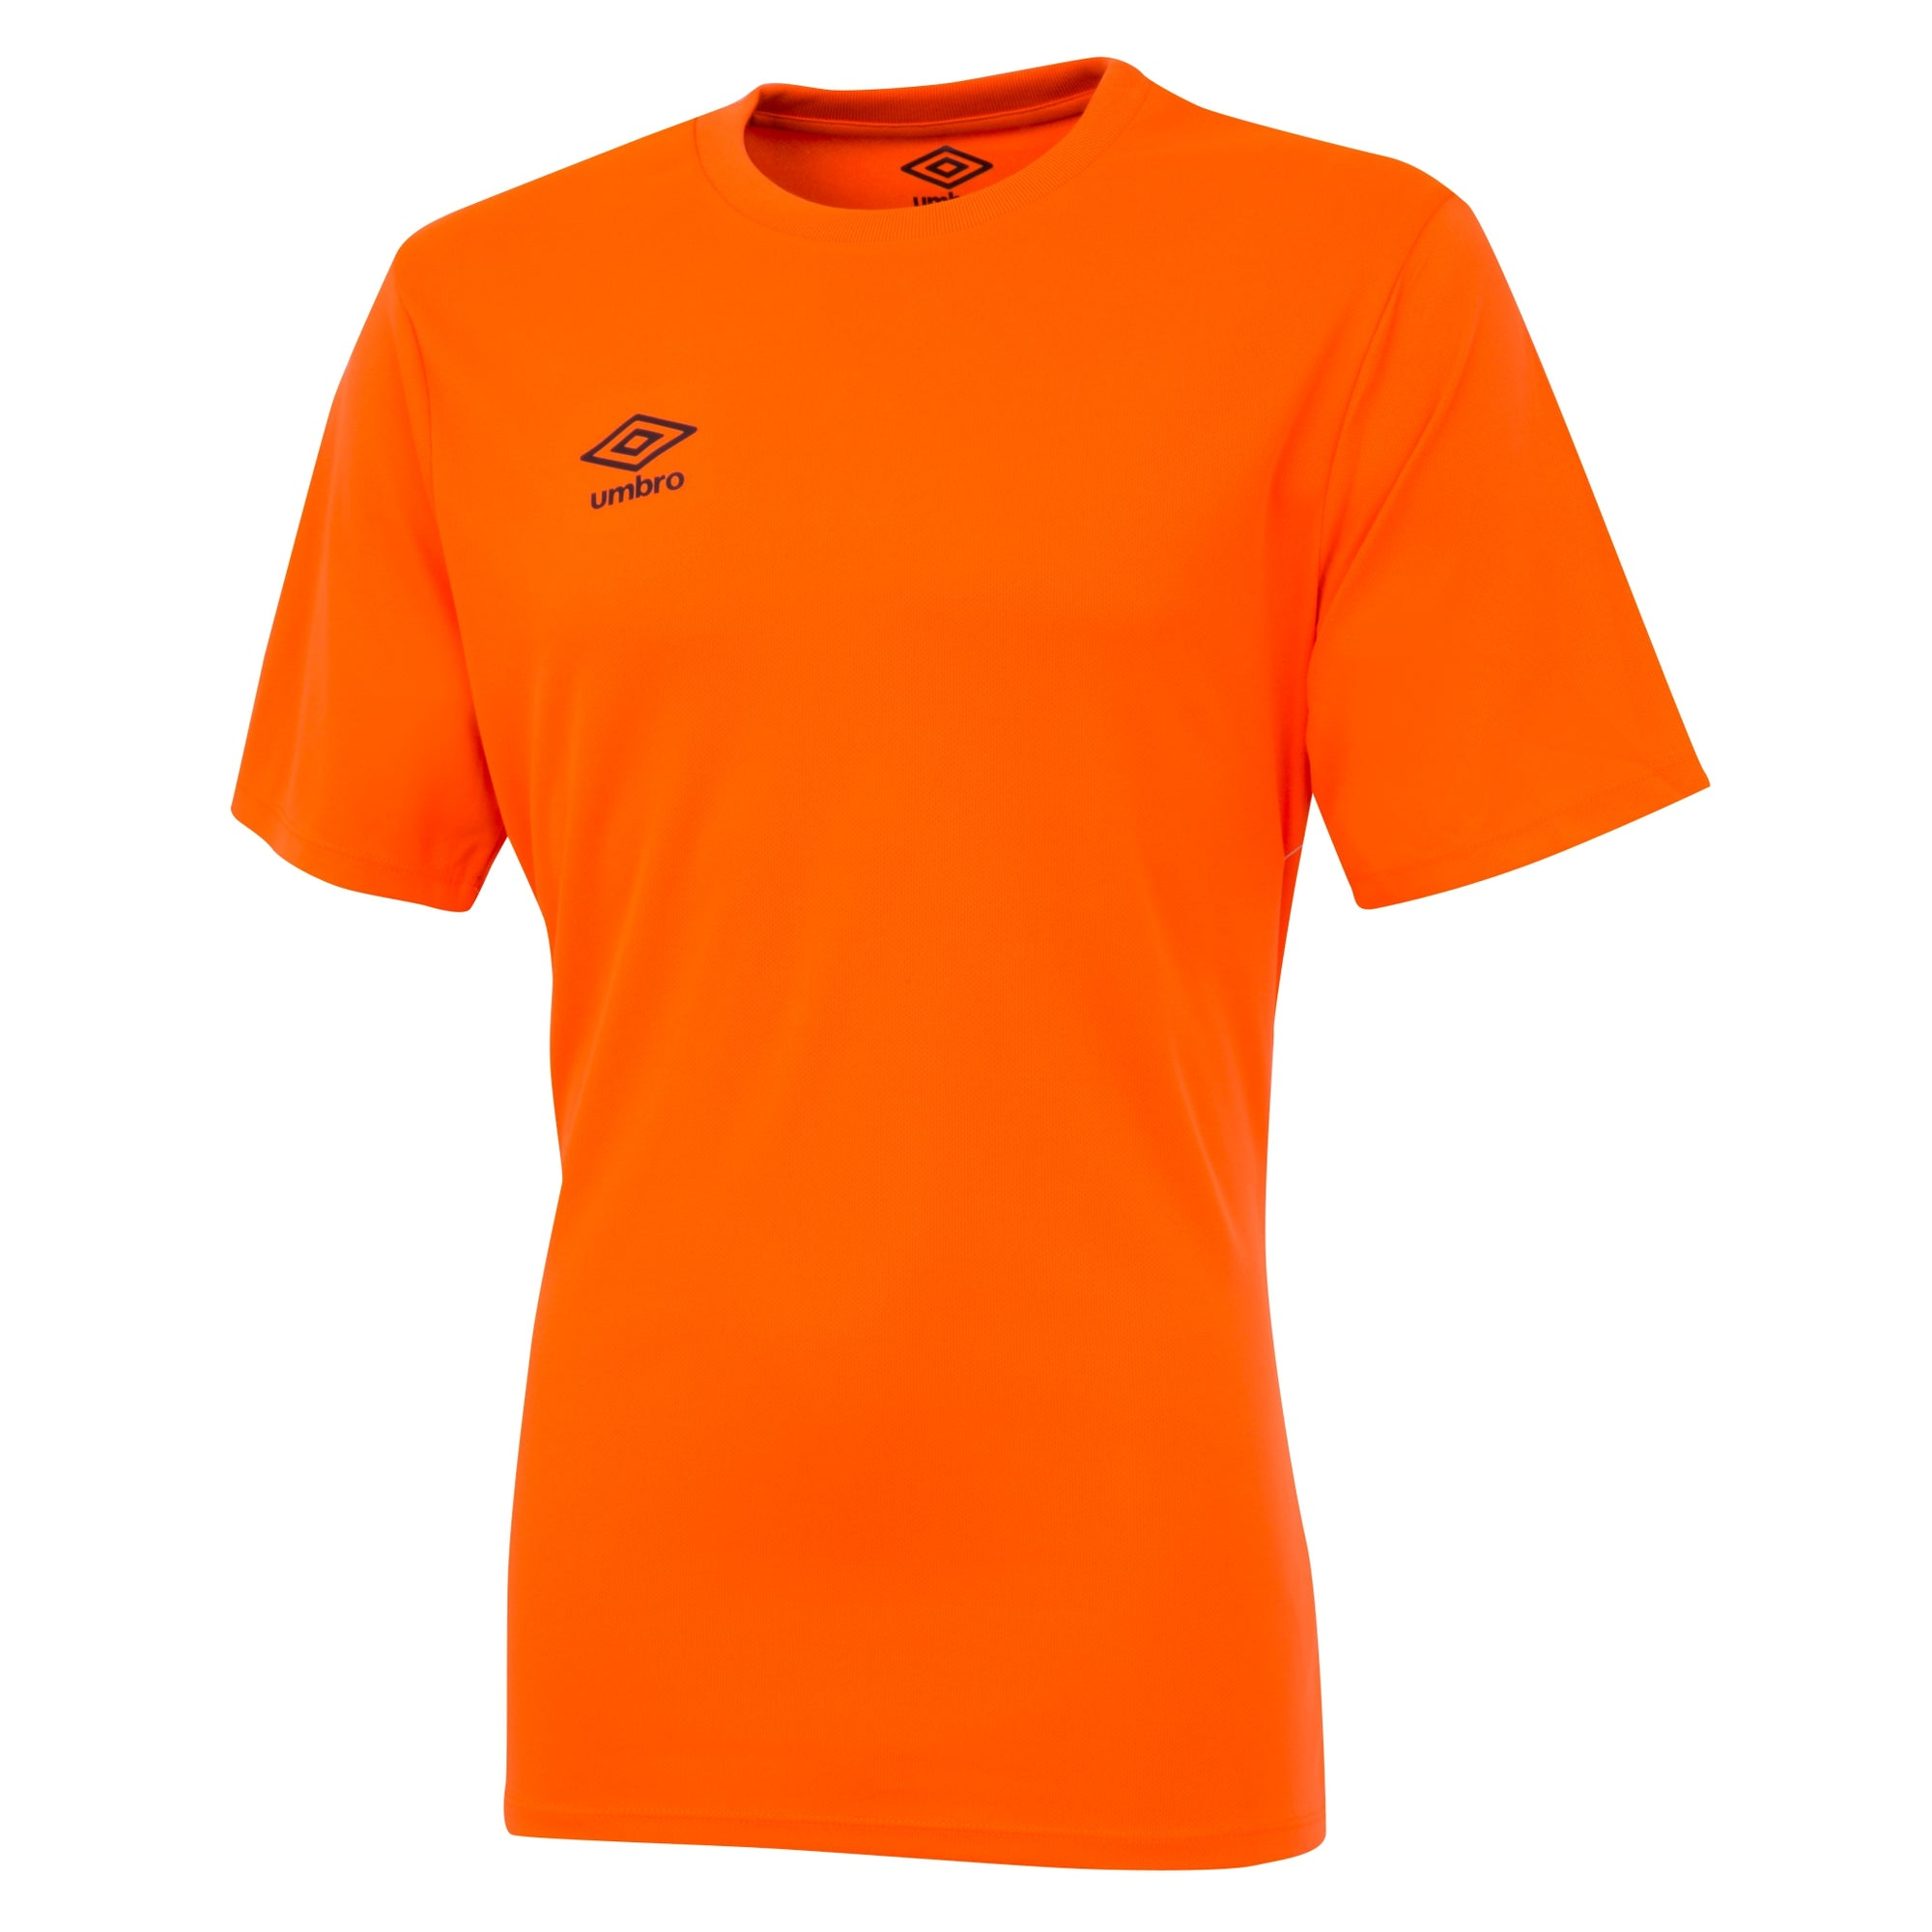 Umbro short sleeve club jersey in shocking orange with black printed Umbro logo